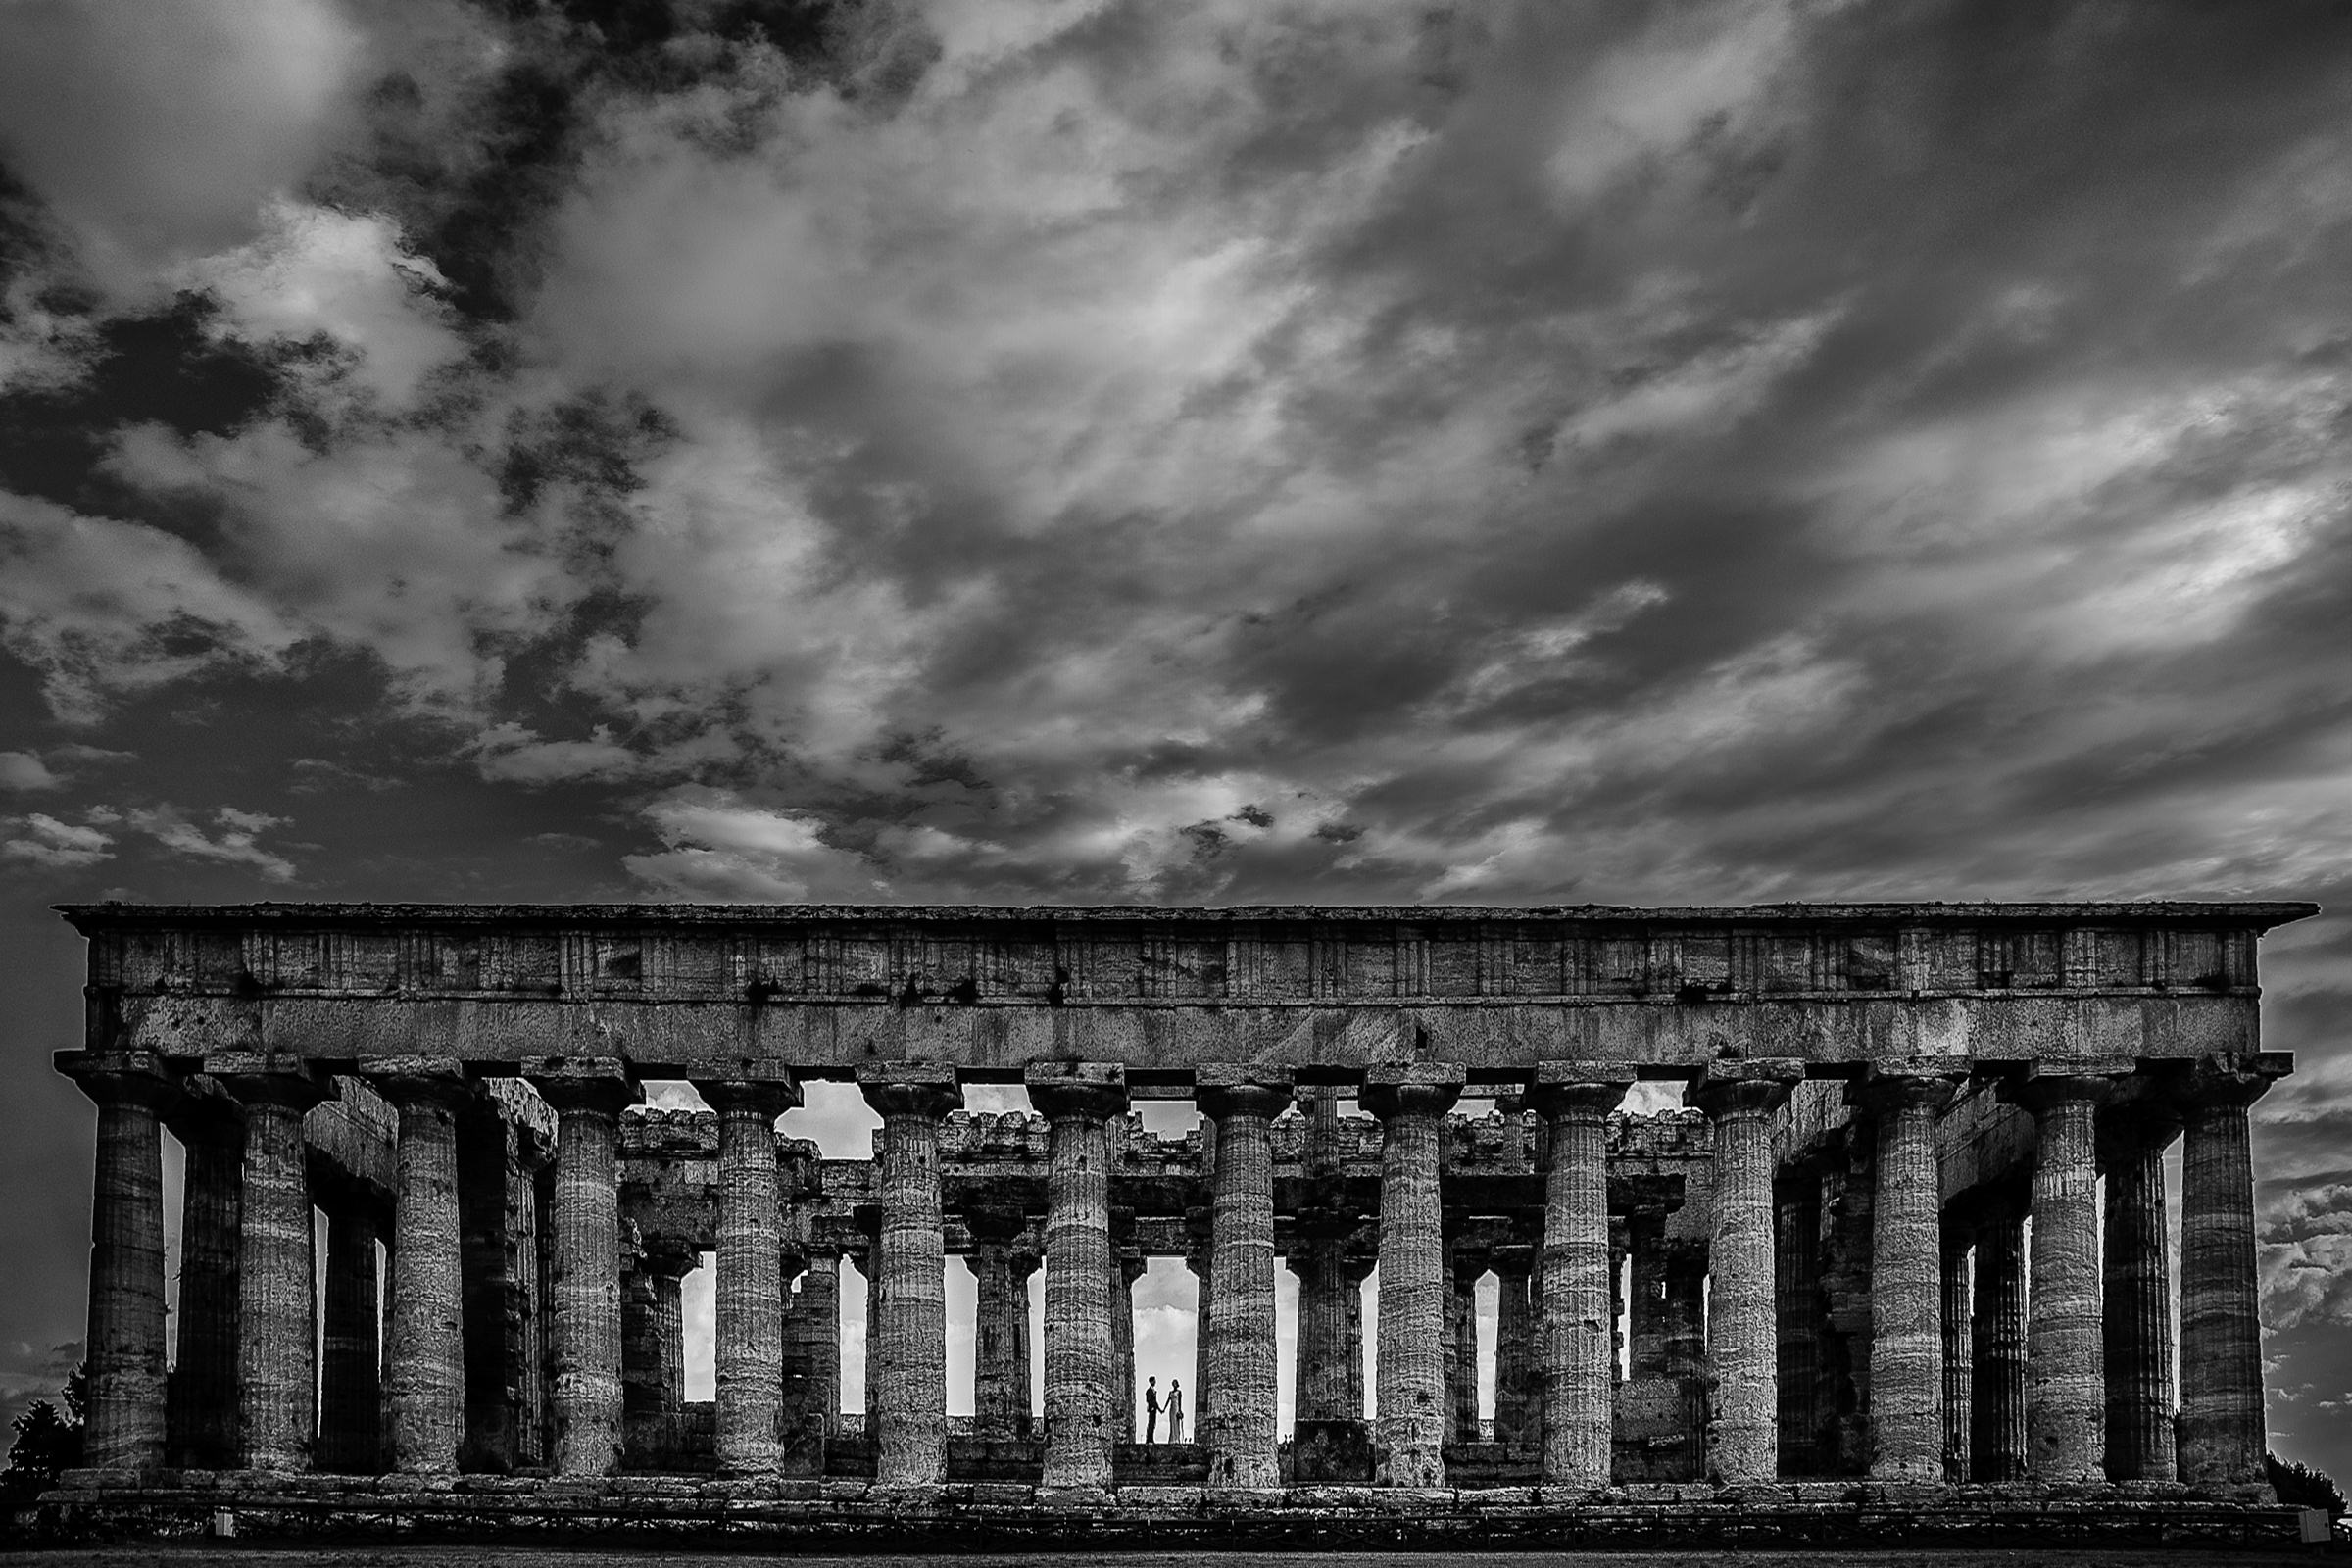 couple-silhouette-at-roman-temple-under-stormy-skies-d2-photography